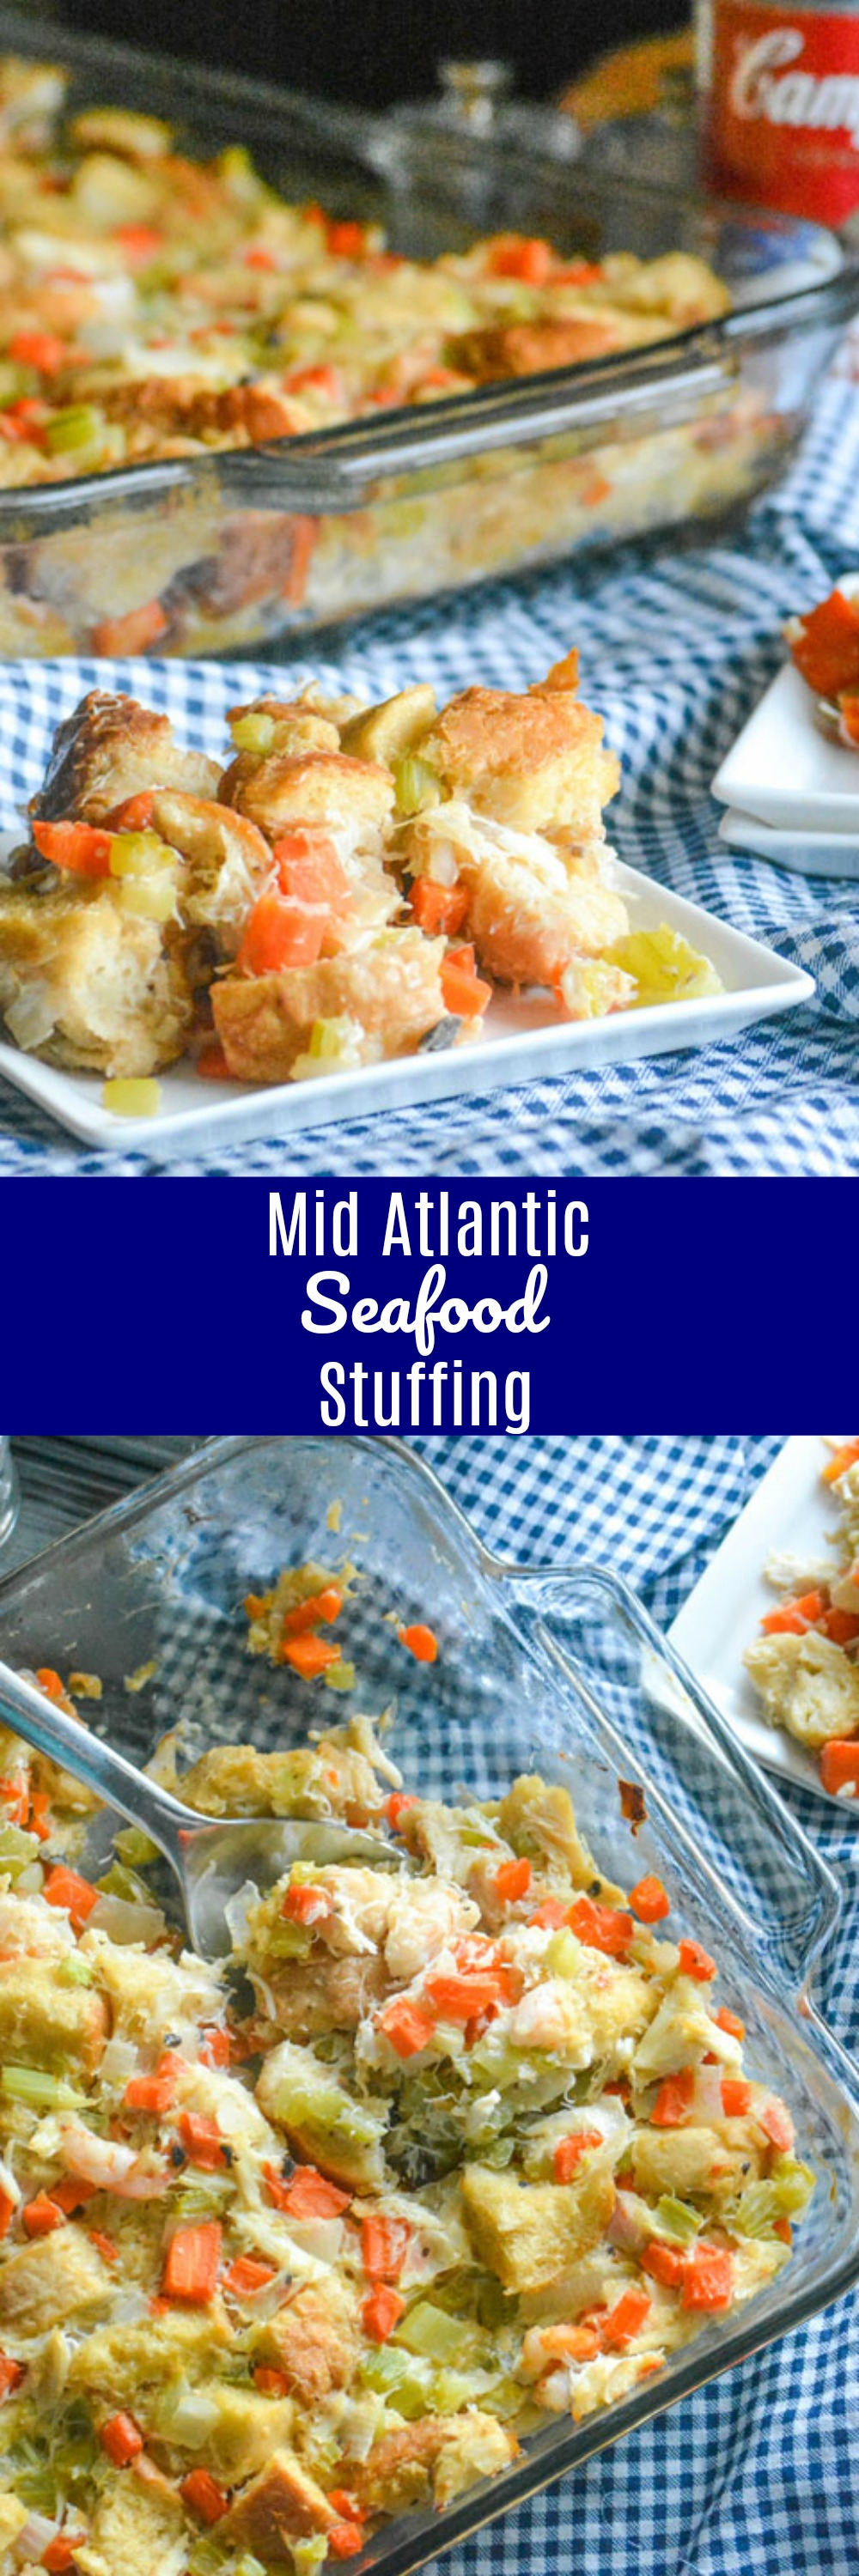 While I adore my Grandma's tried and true stuffing, sometimes I need a little something new around the holidays. This Mid-Atlantic Seafood Stuffing is a fun new twist to the traditional side dish, infused with a heaping helping of regional seafood favorites, like shrimp and lump crab.